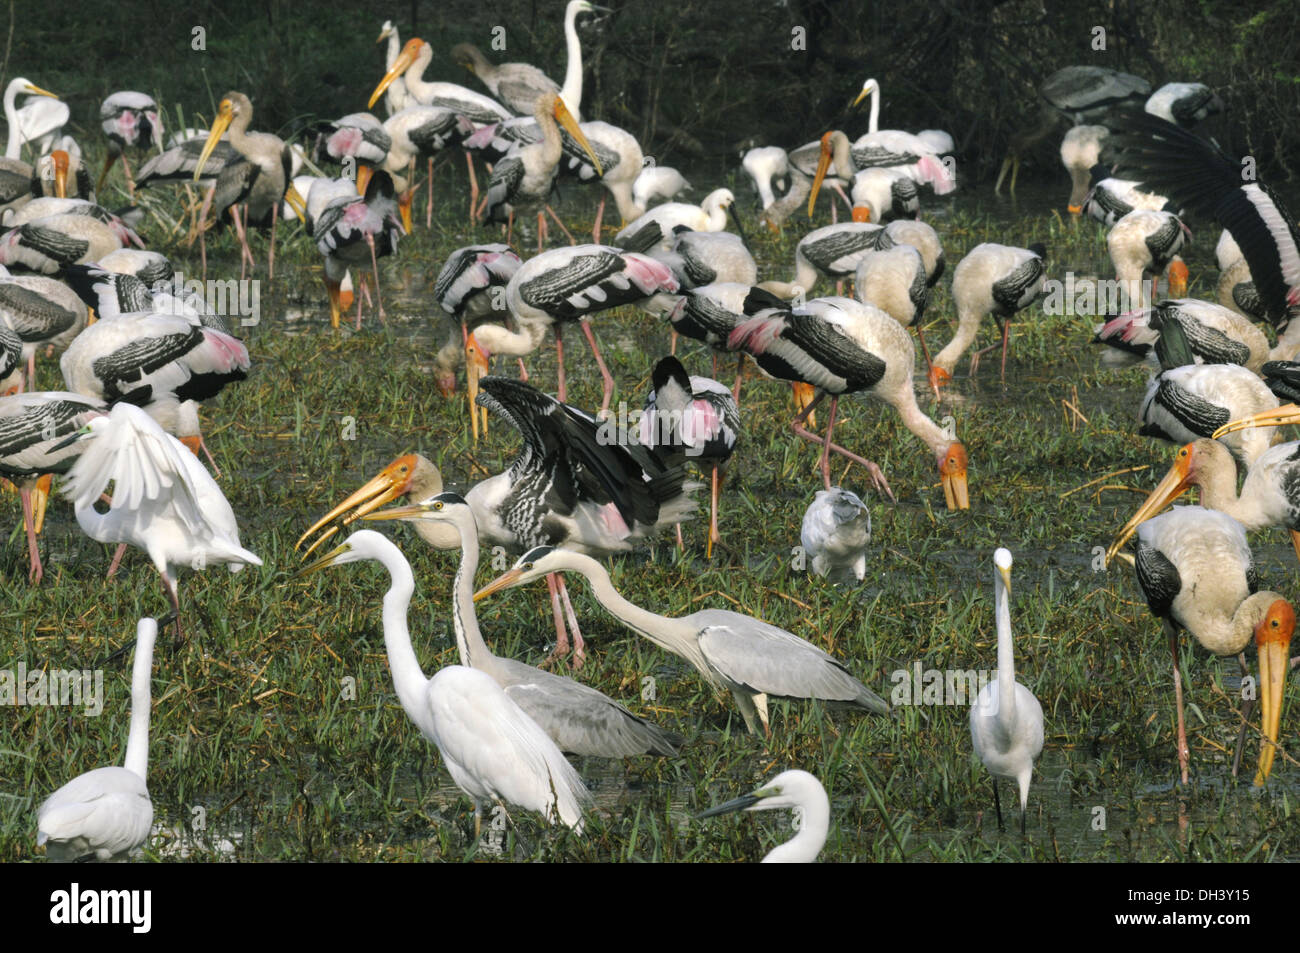 Birds at Bharatpur, India - Stock Image